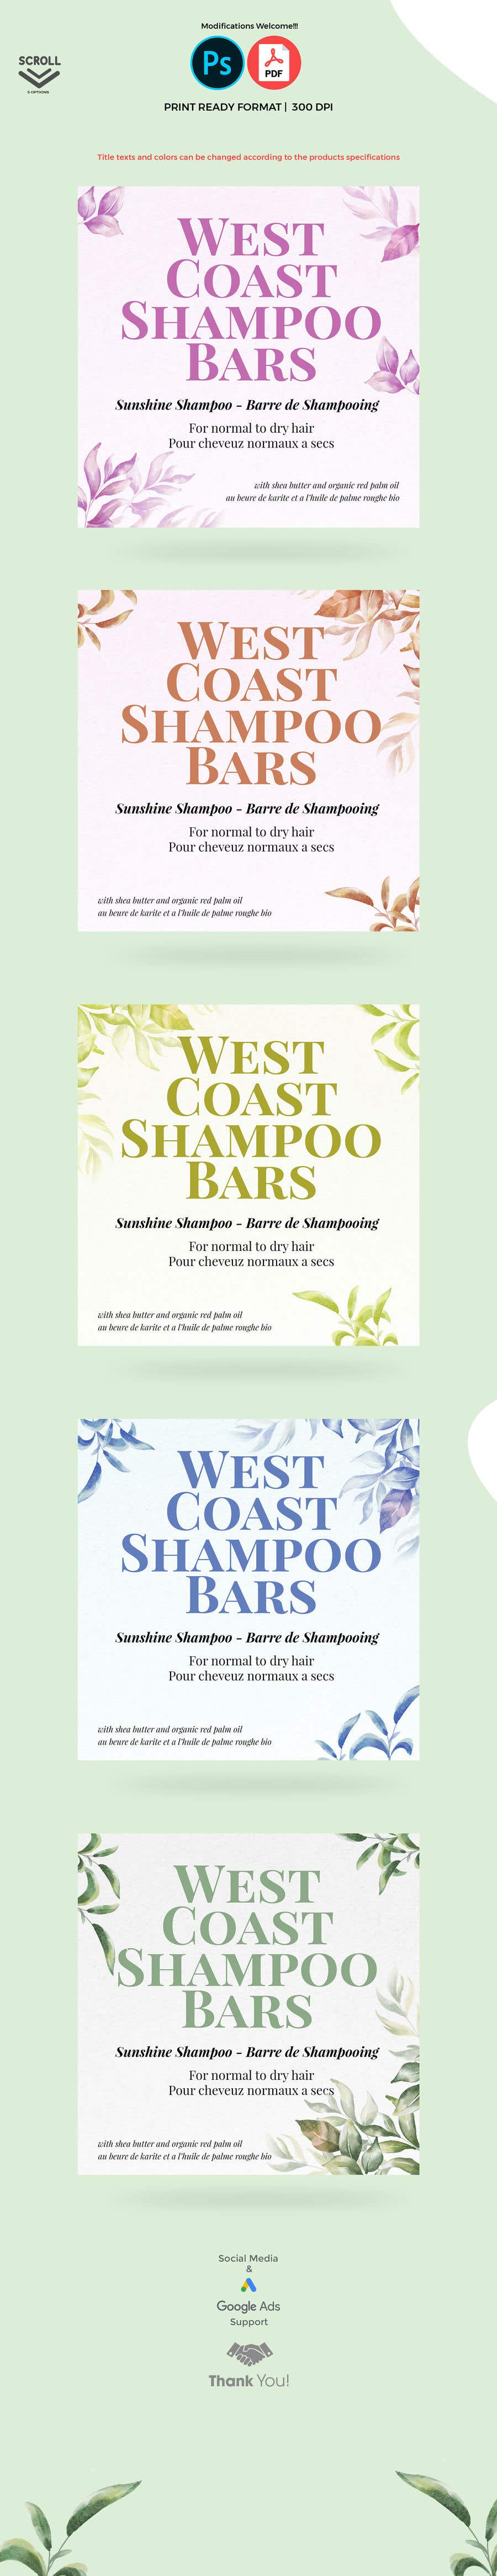 Bài tham dự cuộc thi #                                        21                                      cho                                         I need design help for packaging for shampoo and conditioner bars